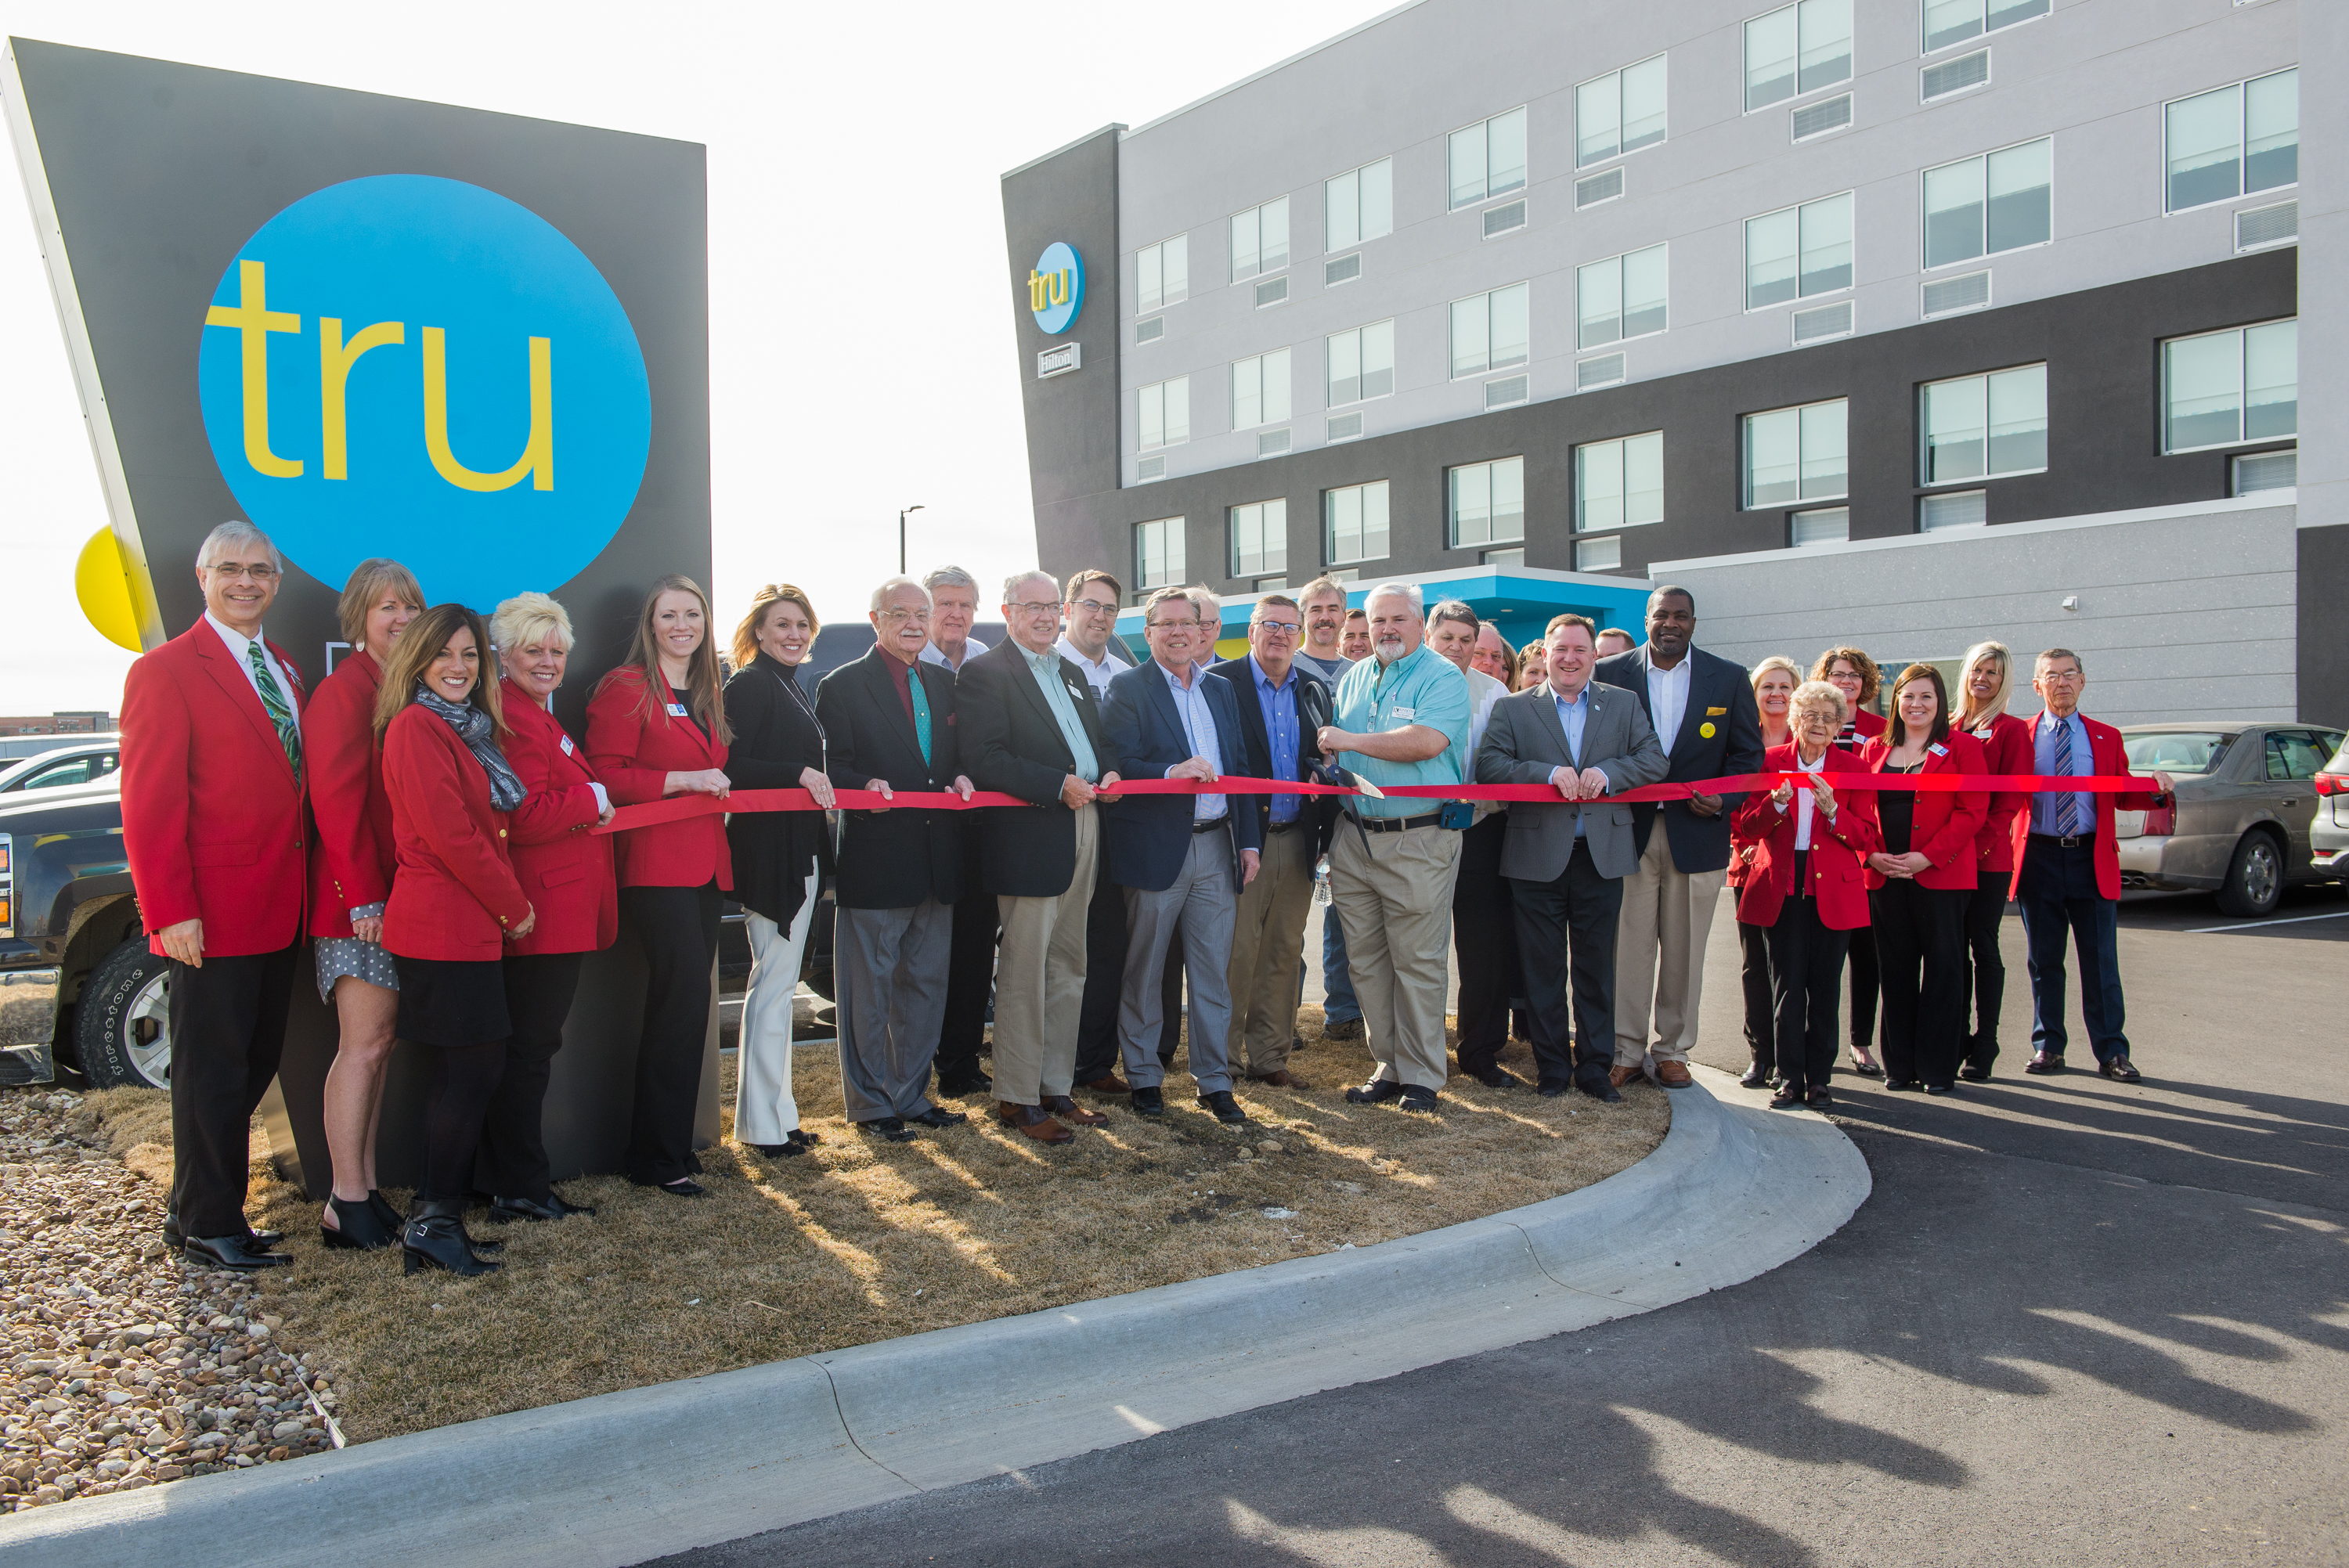 Cedar Rapids, Iowa - The Tru Hilton grand opening celebration on March 15, 2018. For social media, corporate and advertising use by Kinseth Hospitality Companies of North Liberty, Iowa. Photography by David Greedy.